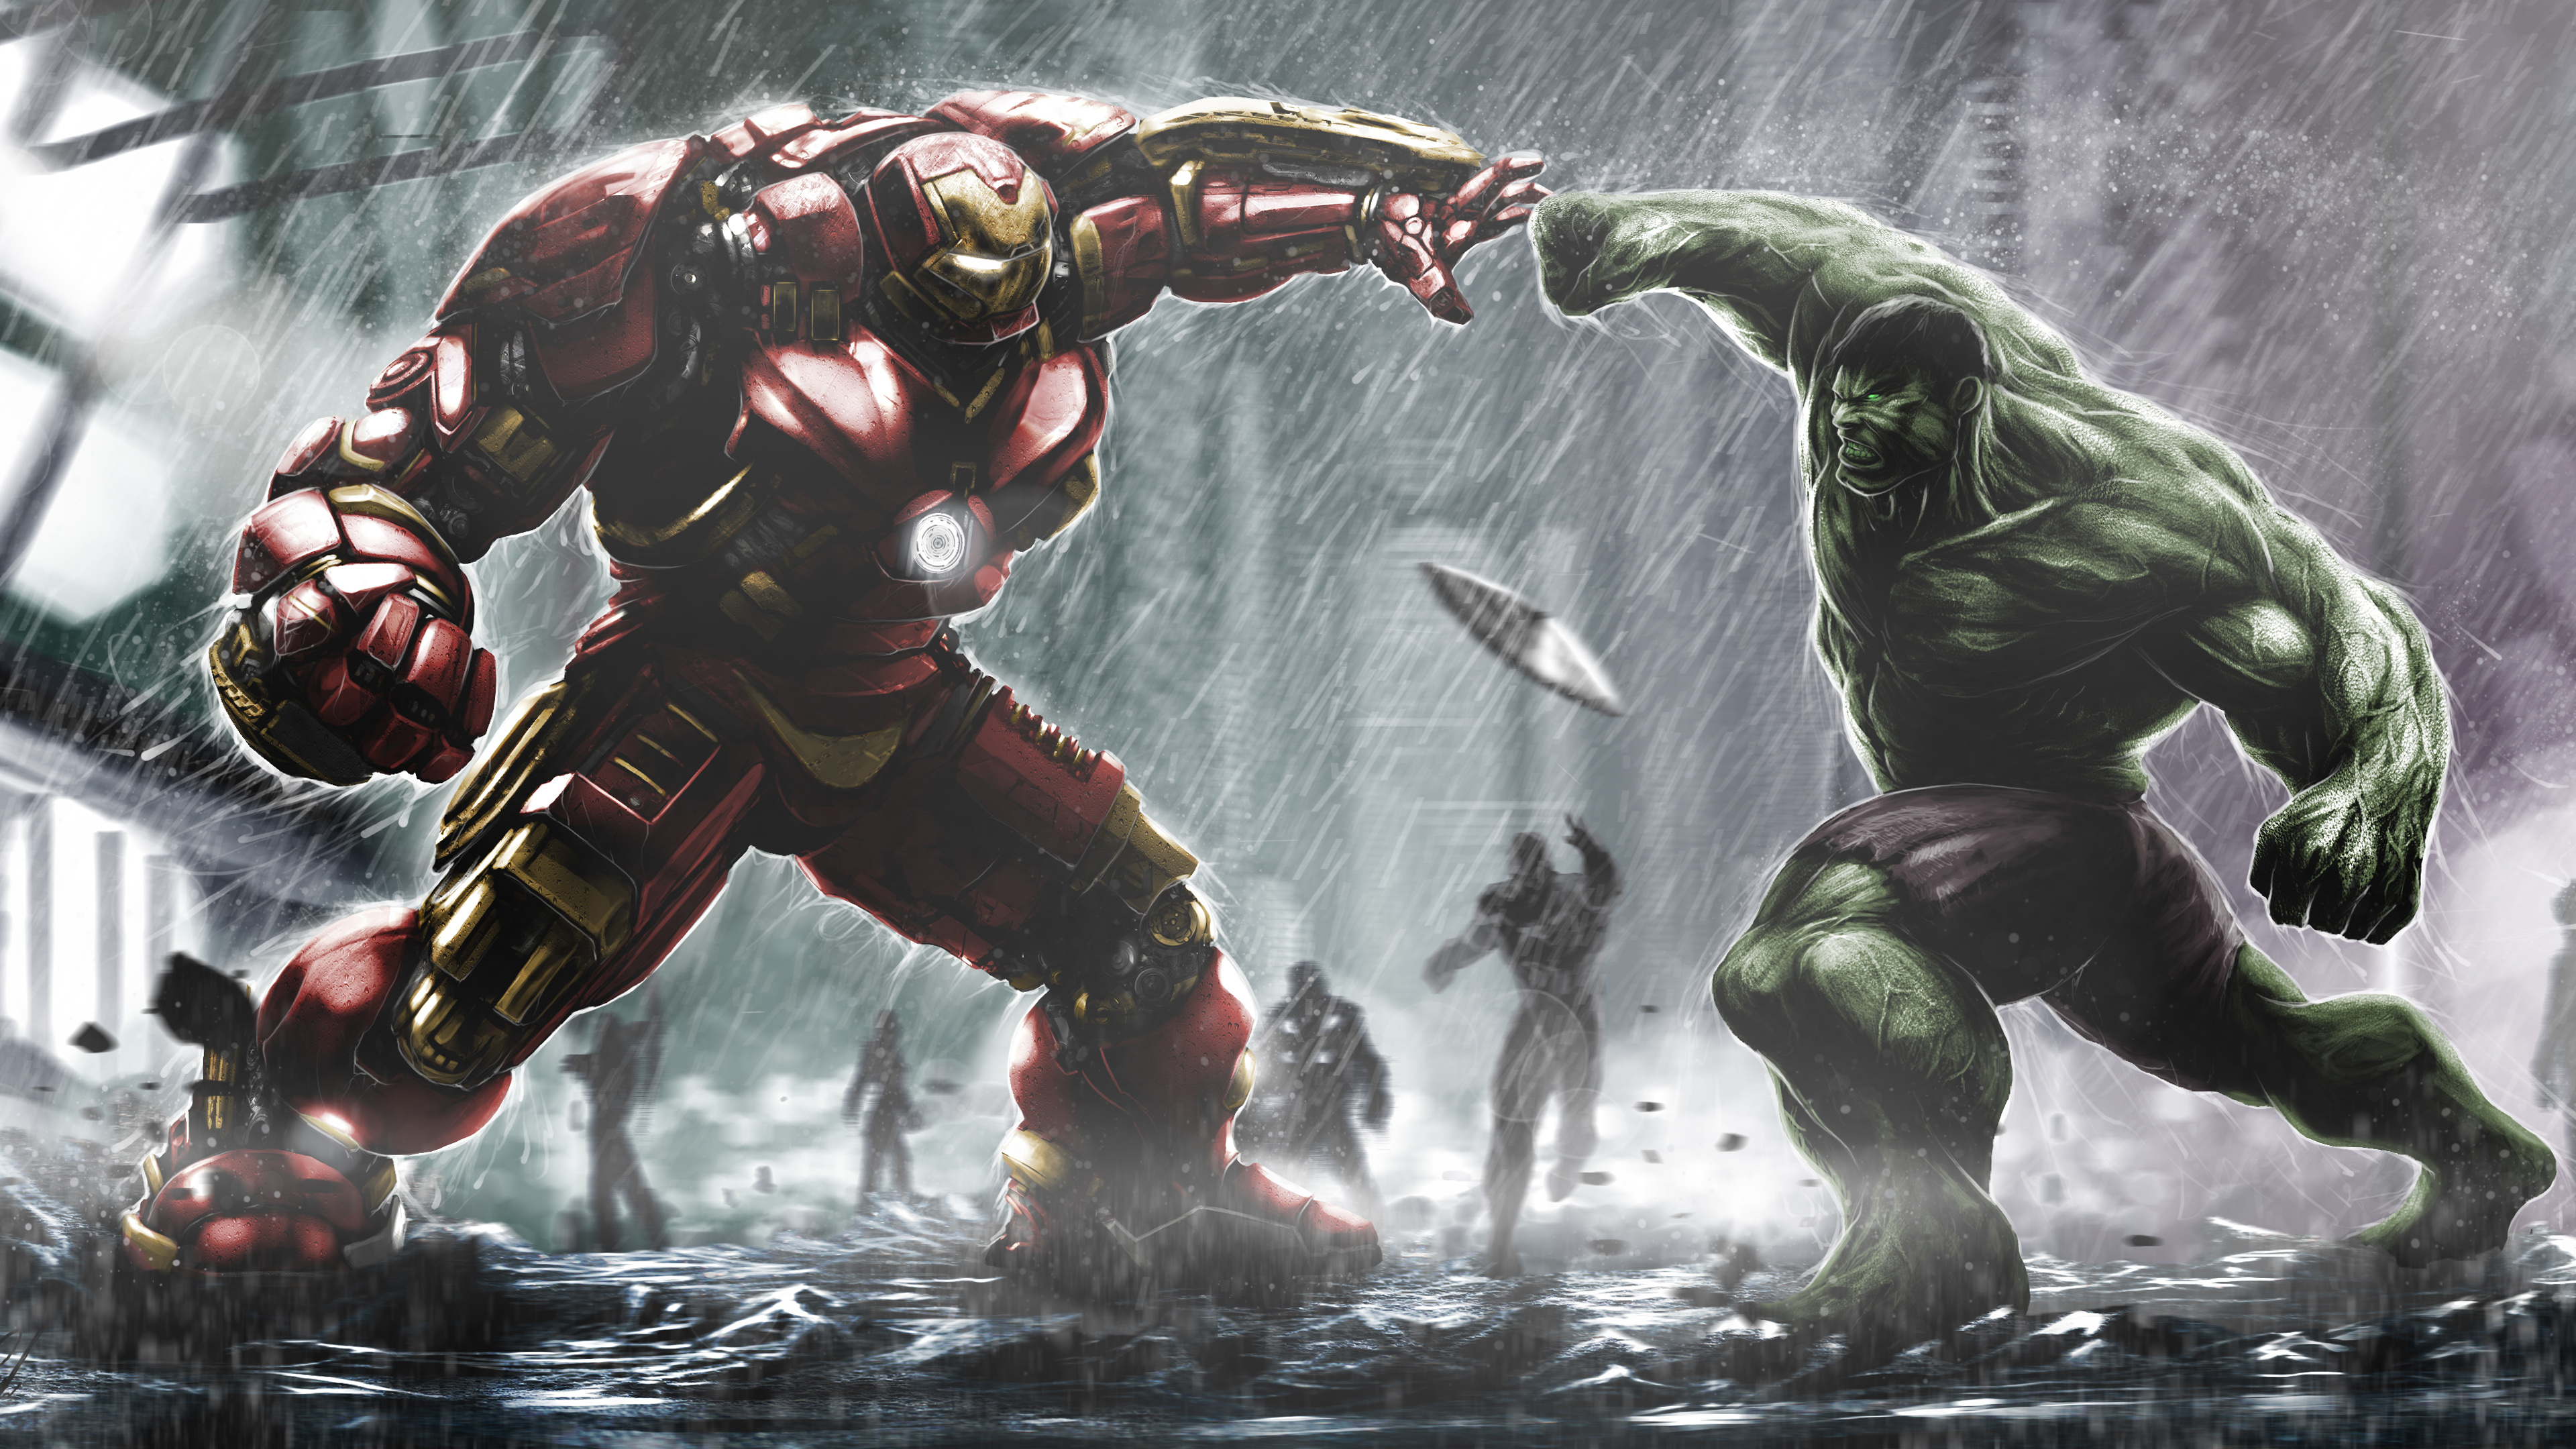 hulk wallpapers photos and desktop backgrounds up to 8K